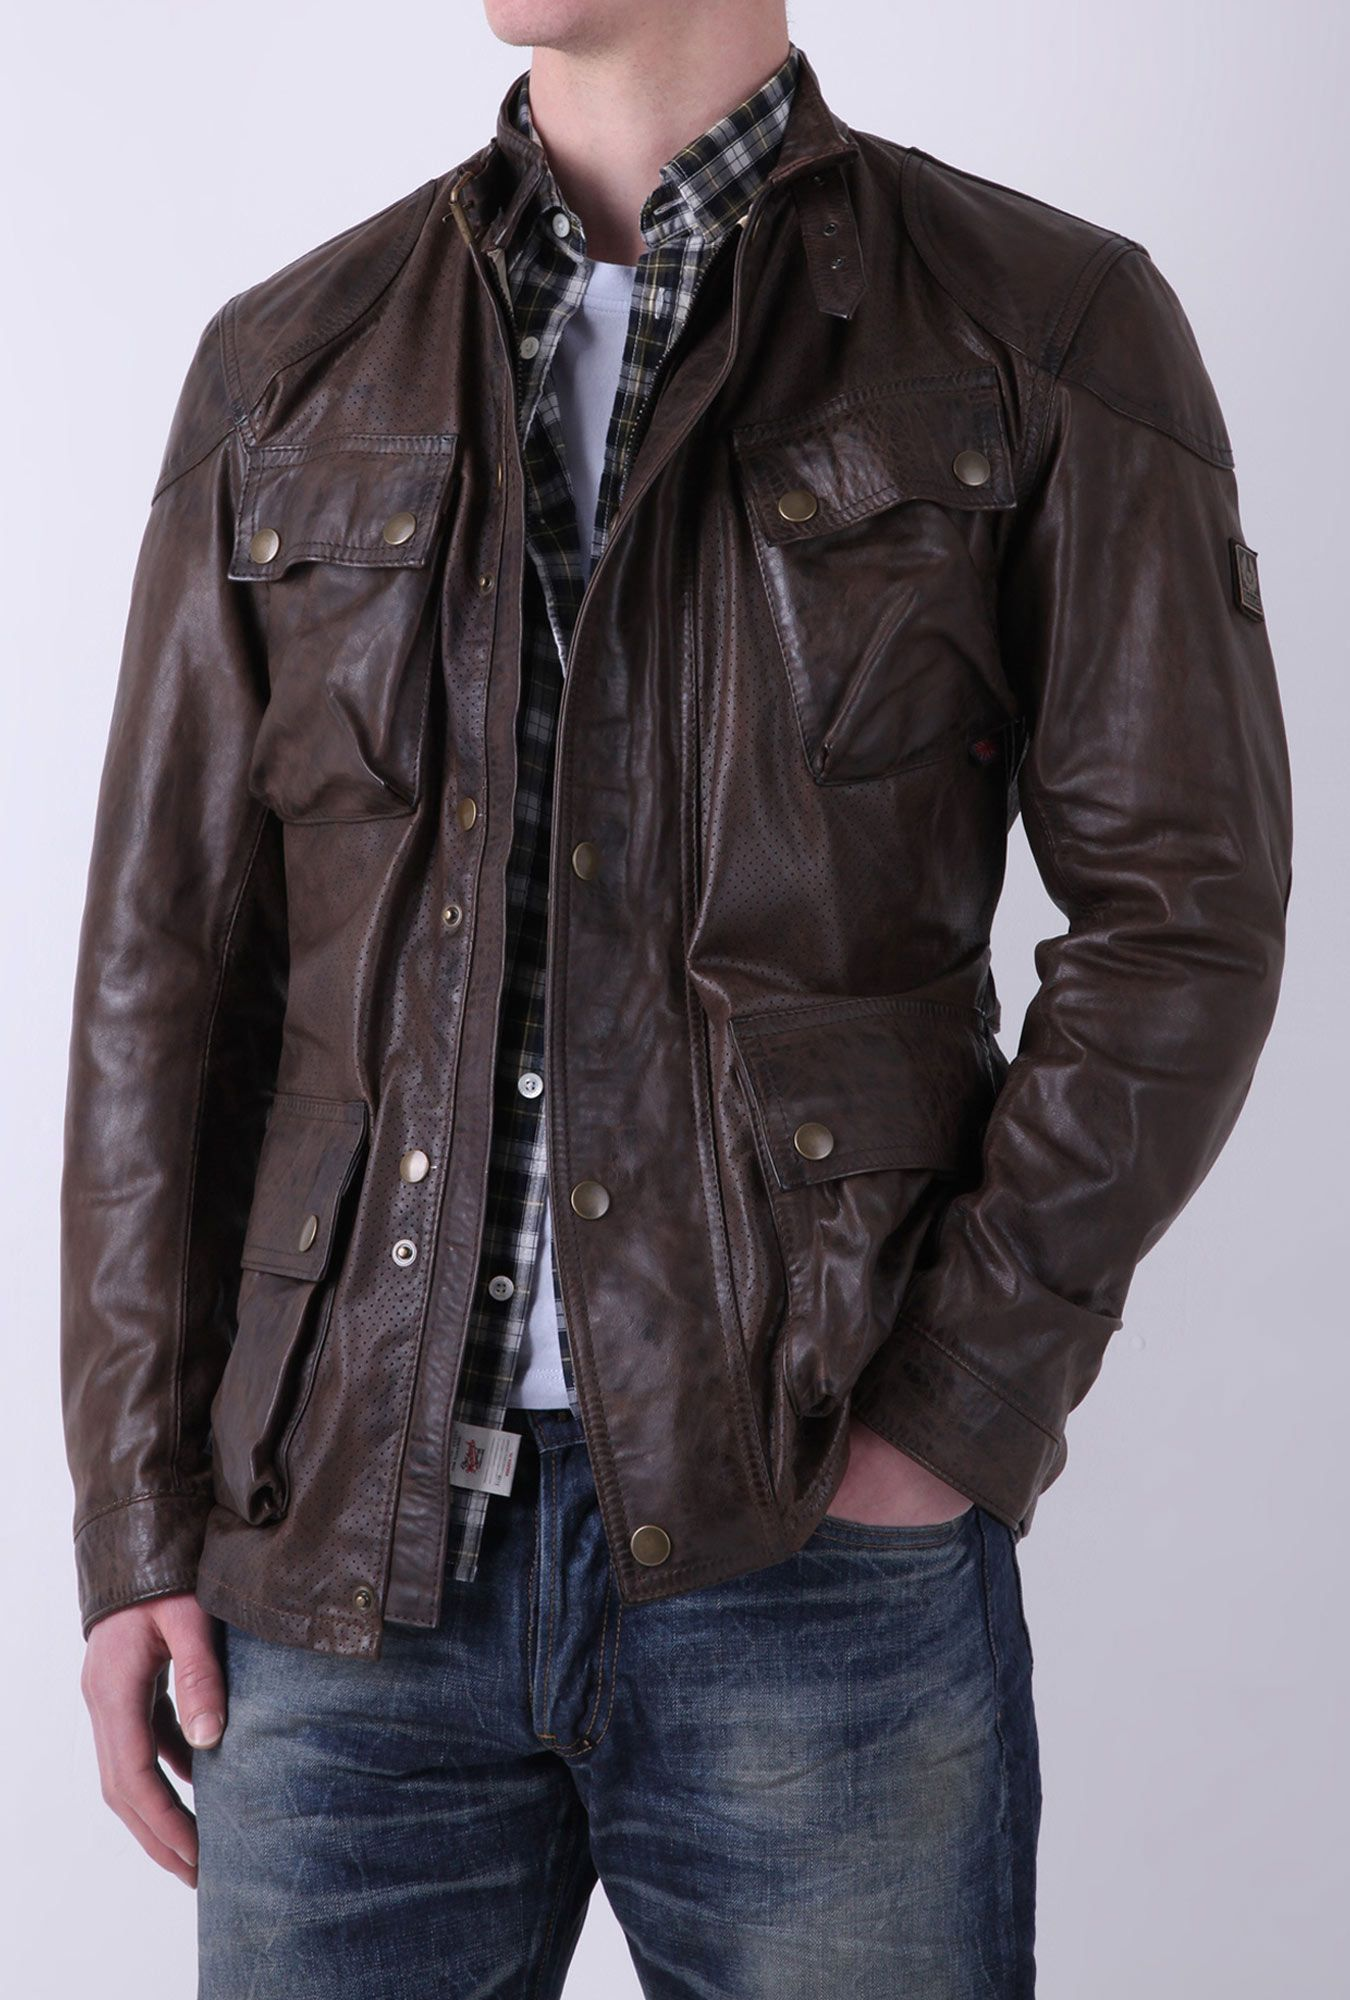 9dcc5d440b Chocolate Perforated Leather Panther Jacket by Belstaff | jackets ...